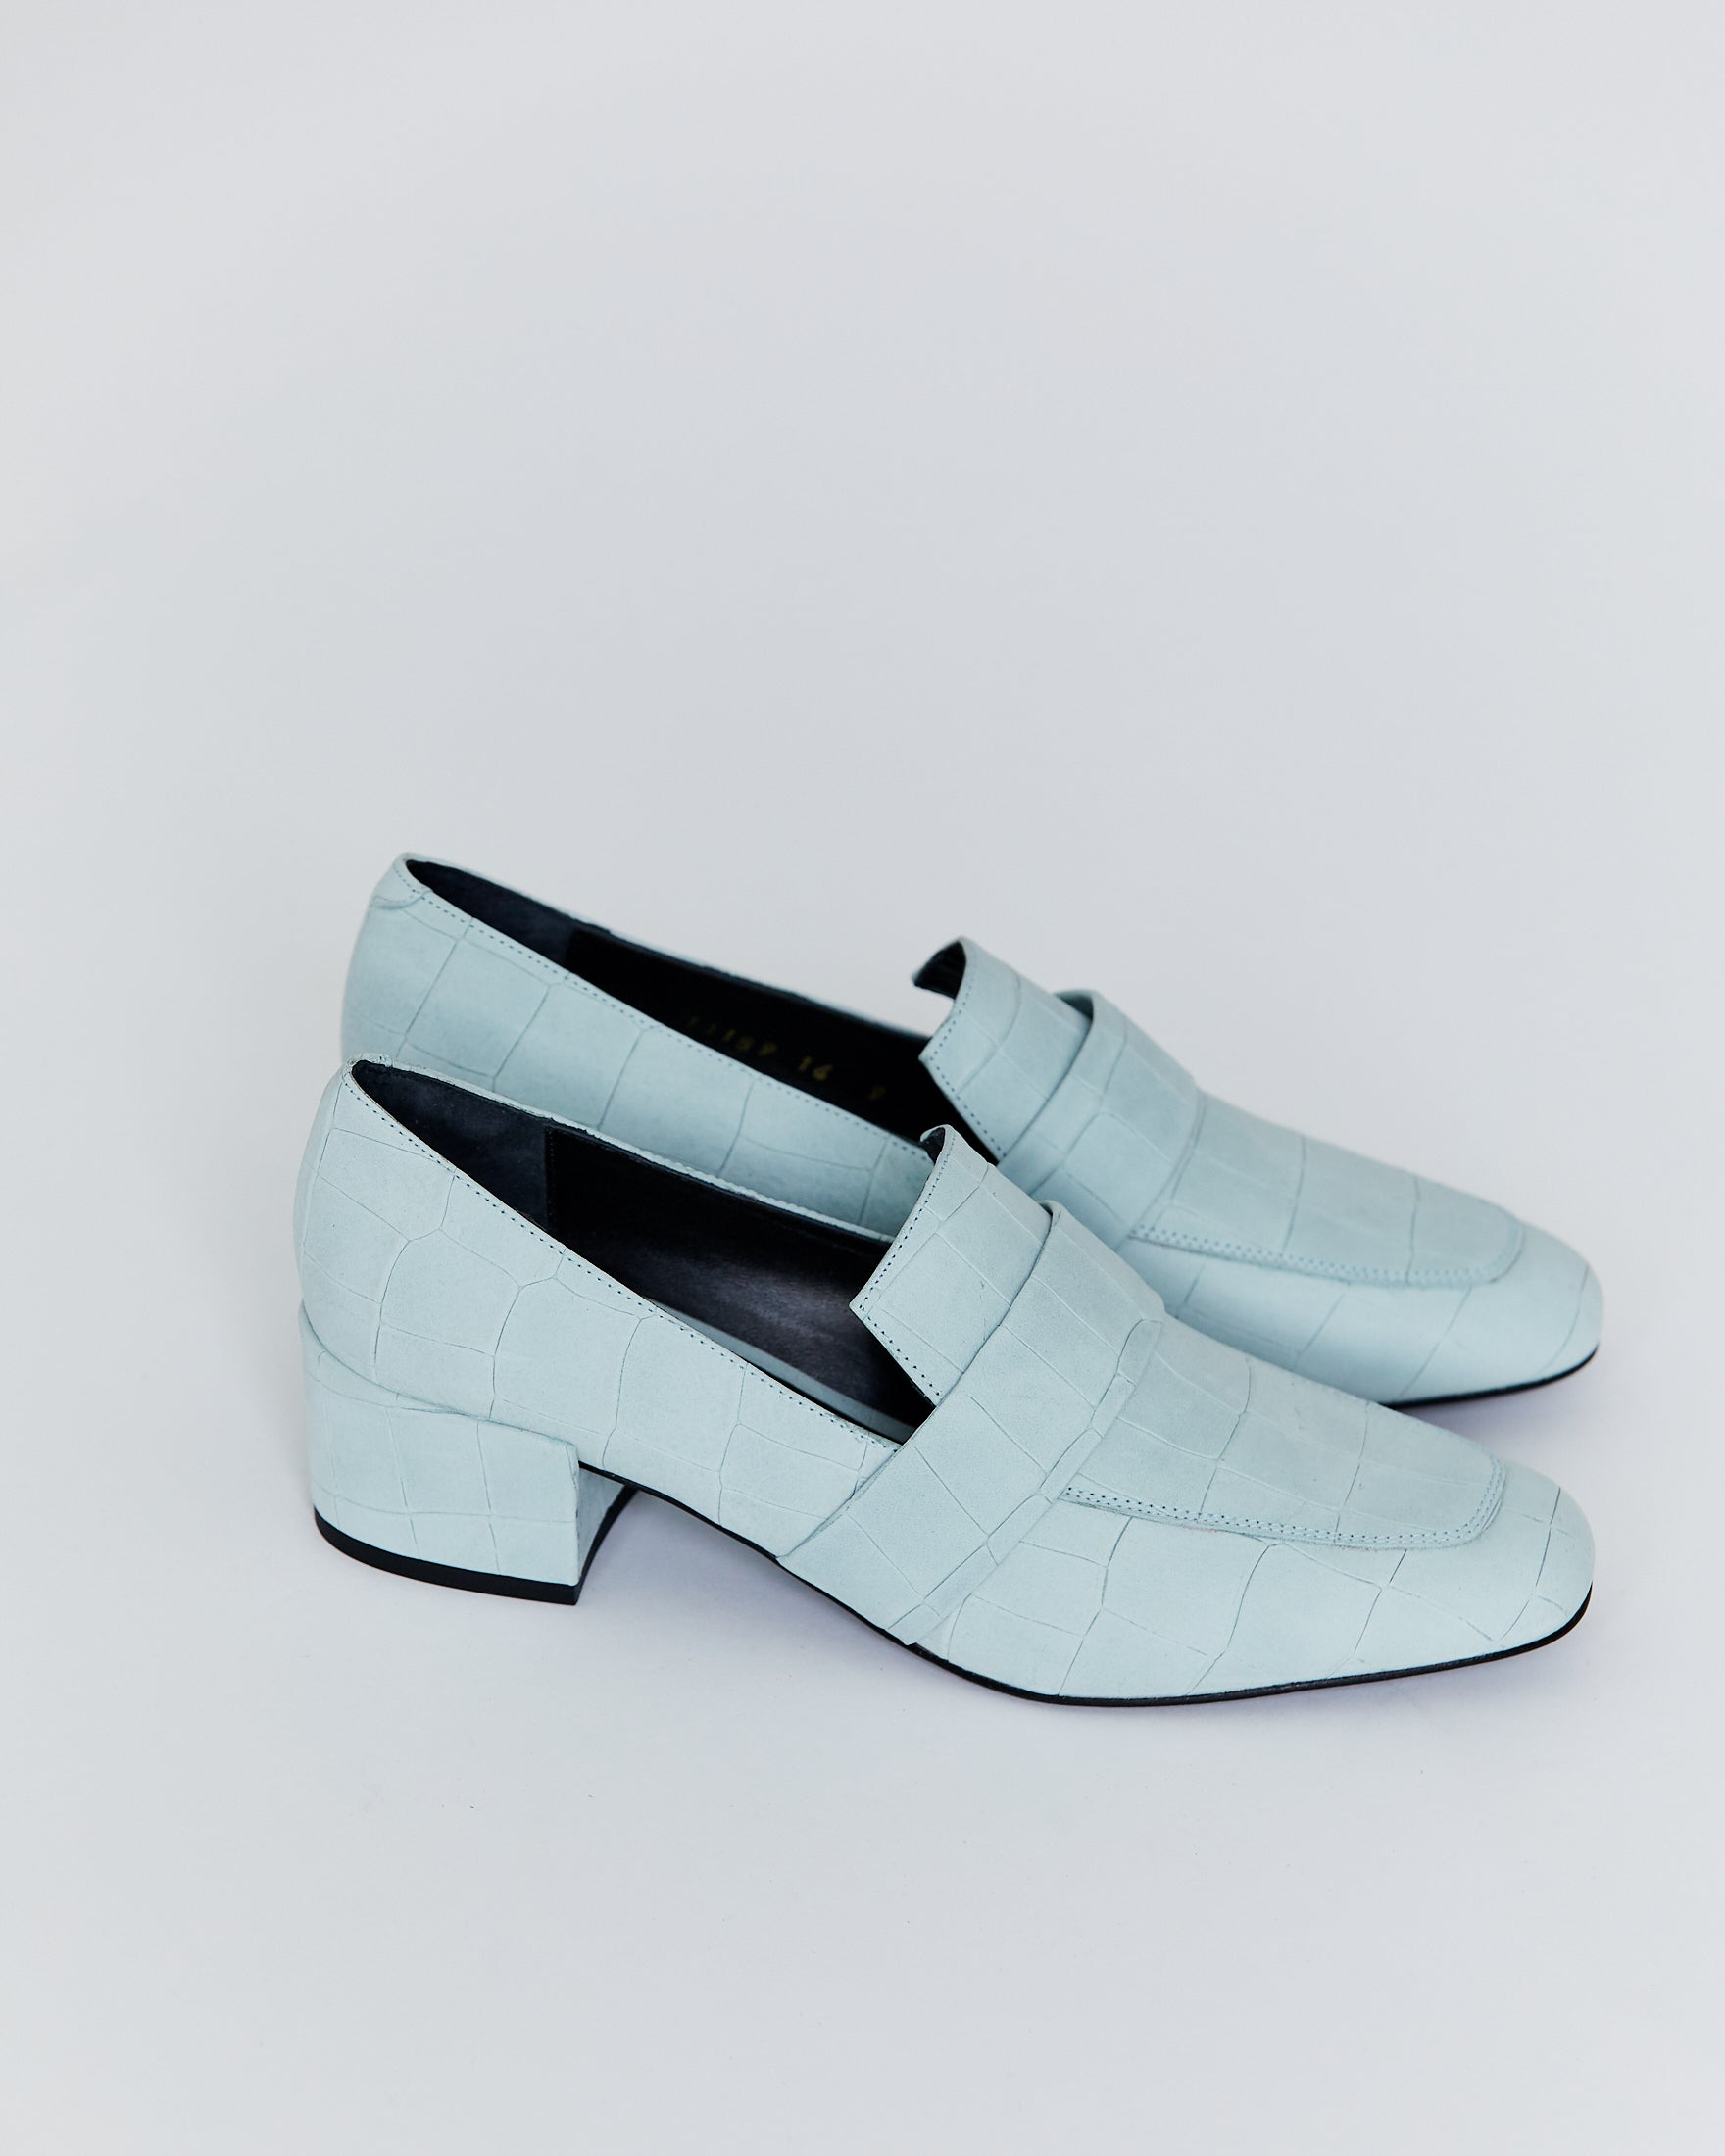 FREDA SALVADOR - ROCK LOAFER - MINERAL CROC